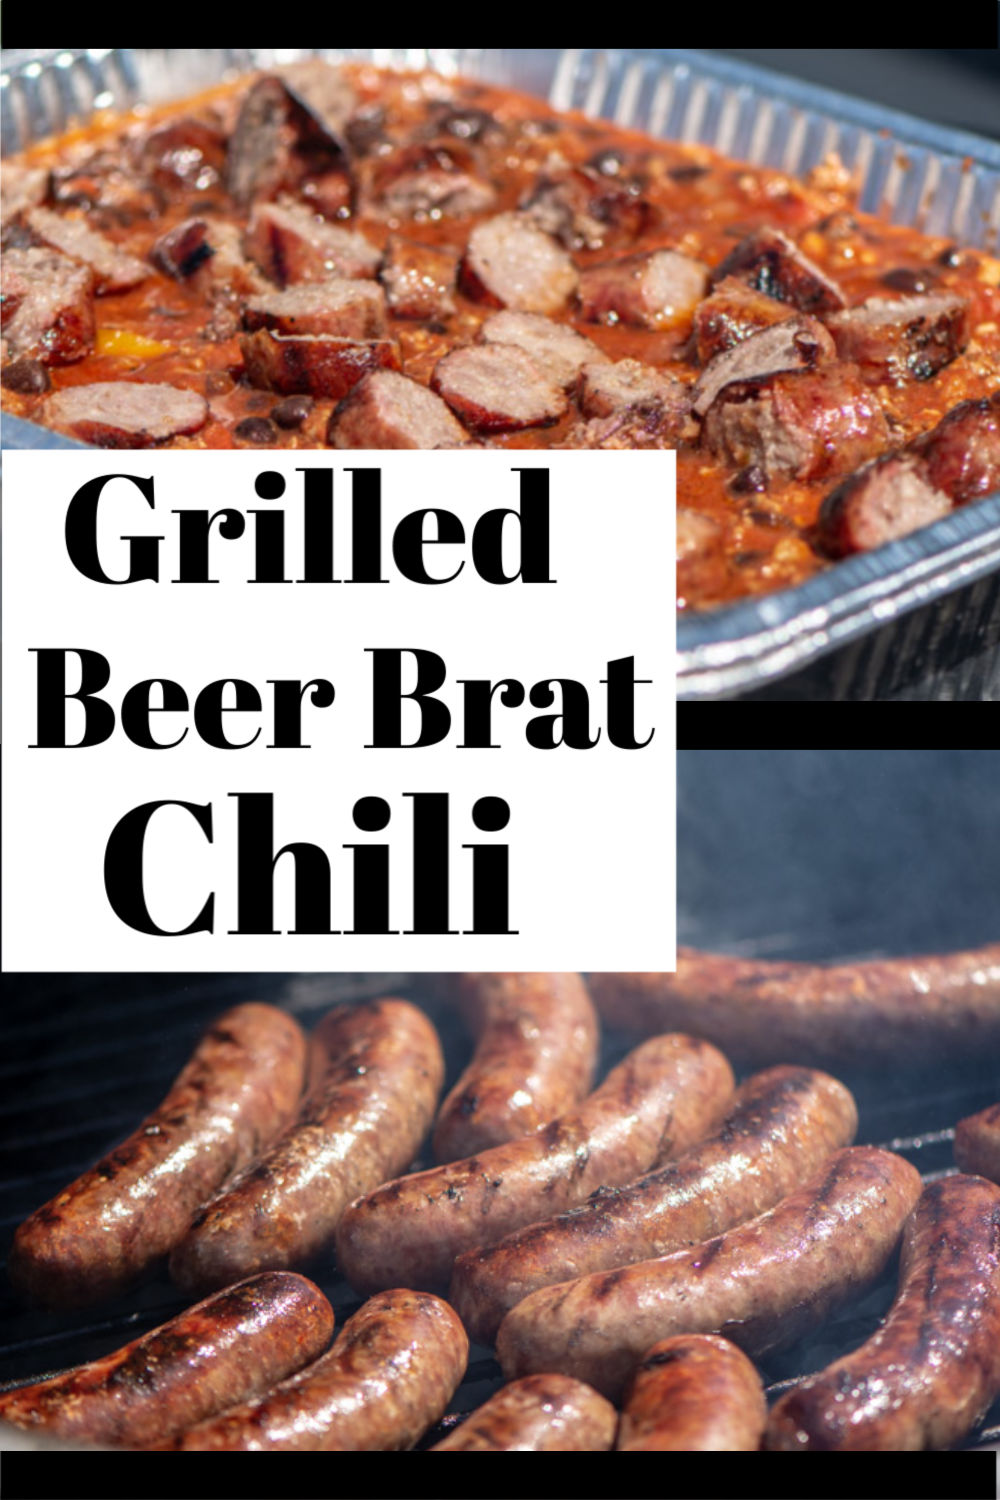 Grilled Beer Brat Chili - Use a disposable pan on the grill to make the perfect tasty chili for any BBQ or Game #Beer #BeerBrats #Brats #BBQ #Grill #BGE #BigGreenEgg #Football